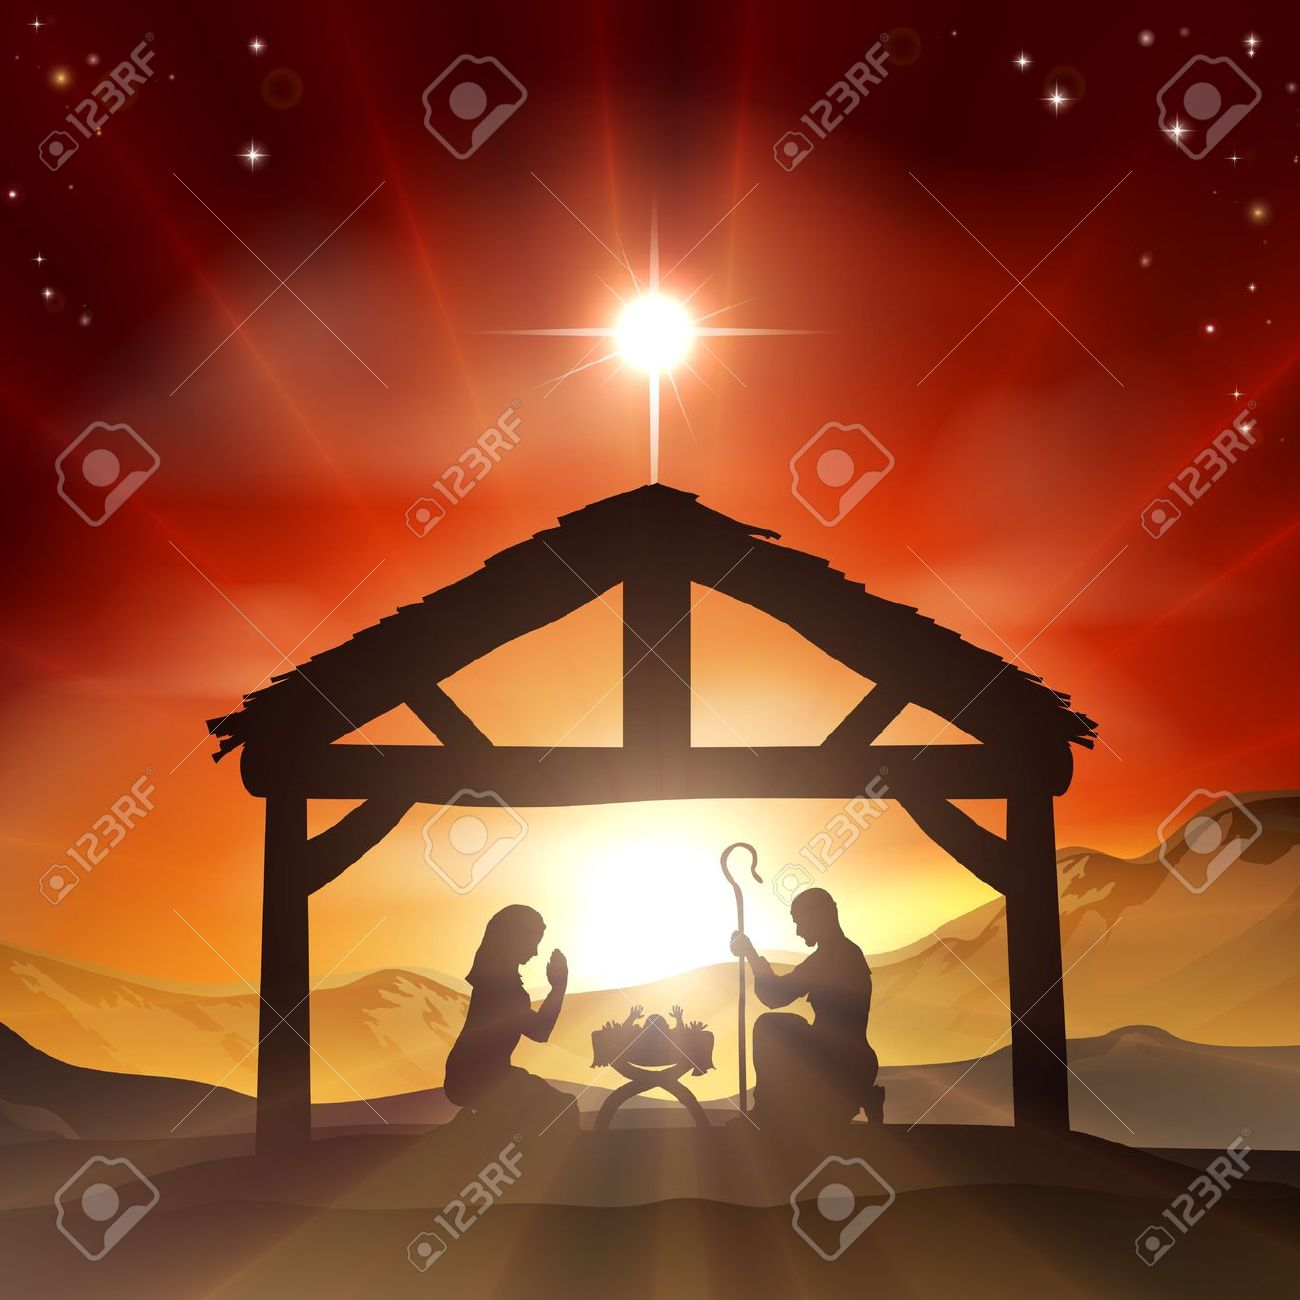 hight resolution of red christmas nativity clipart